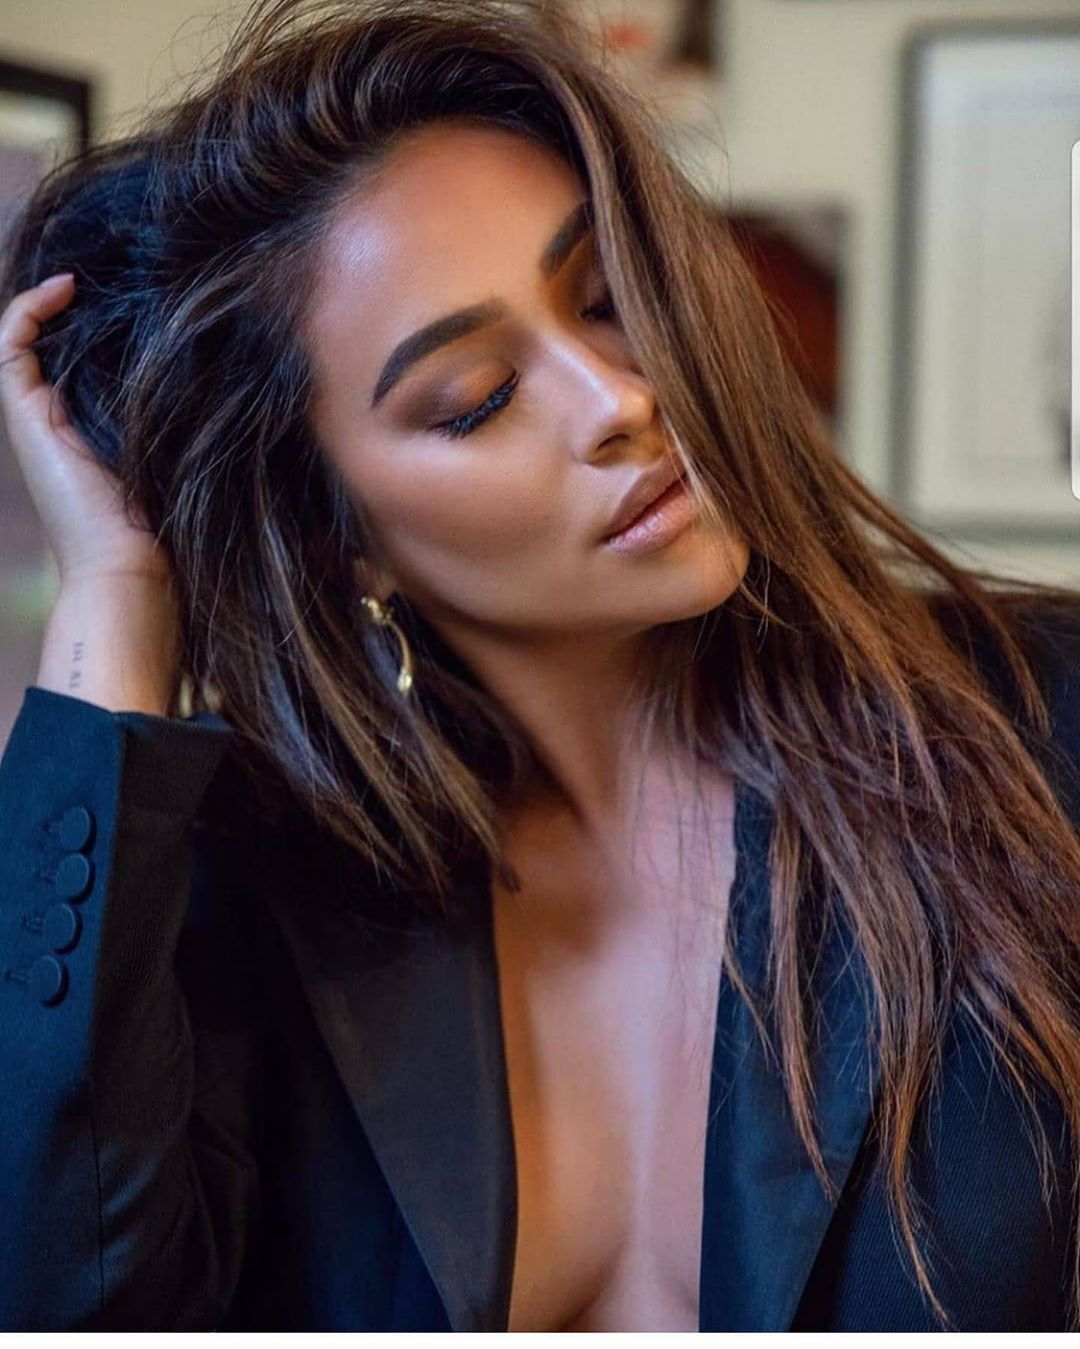 Https Www Instagram Com P Cdeuxbtj6fd Igshid Bs80a75p7dp6 In 2020 Shay Mitchell Hair Shay Mitchell Hair Styles